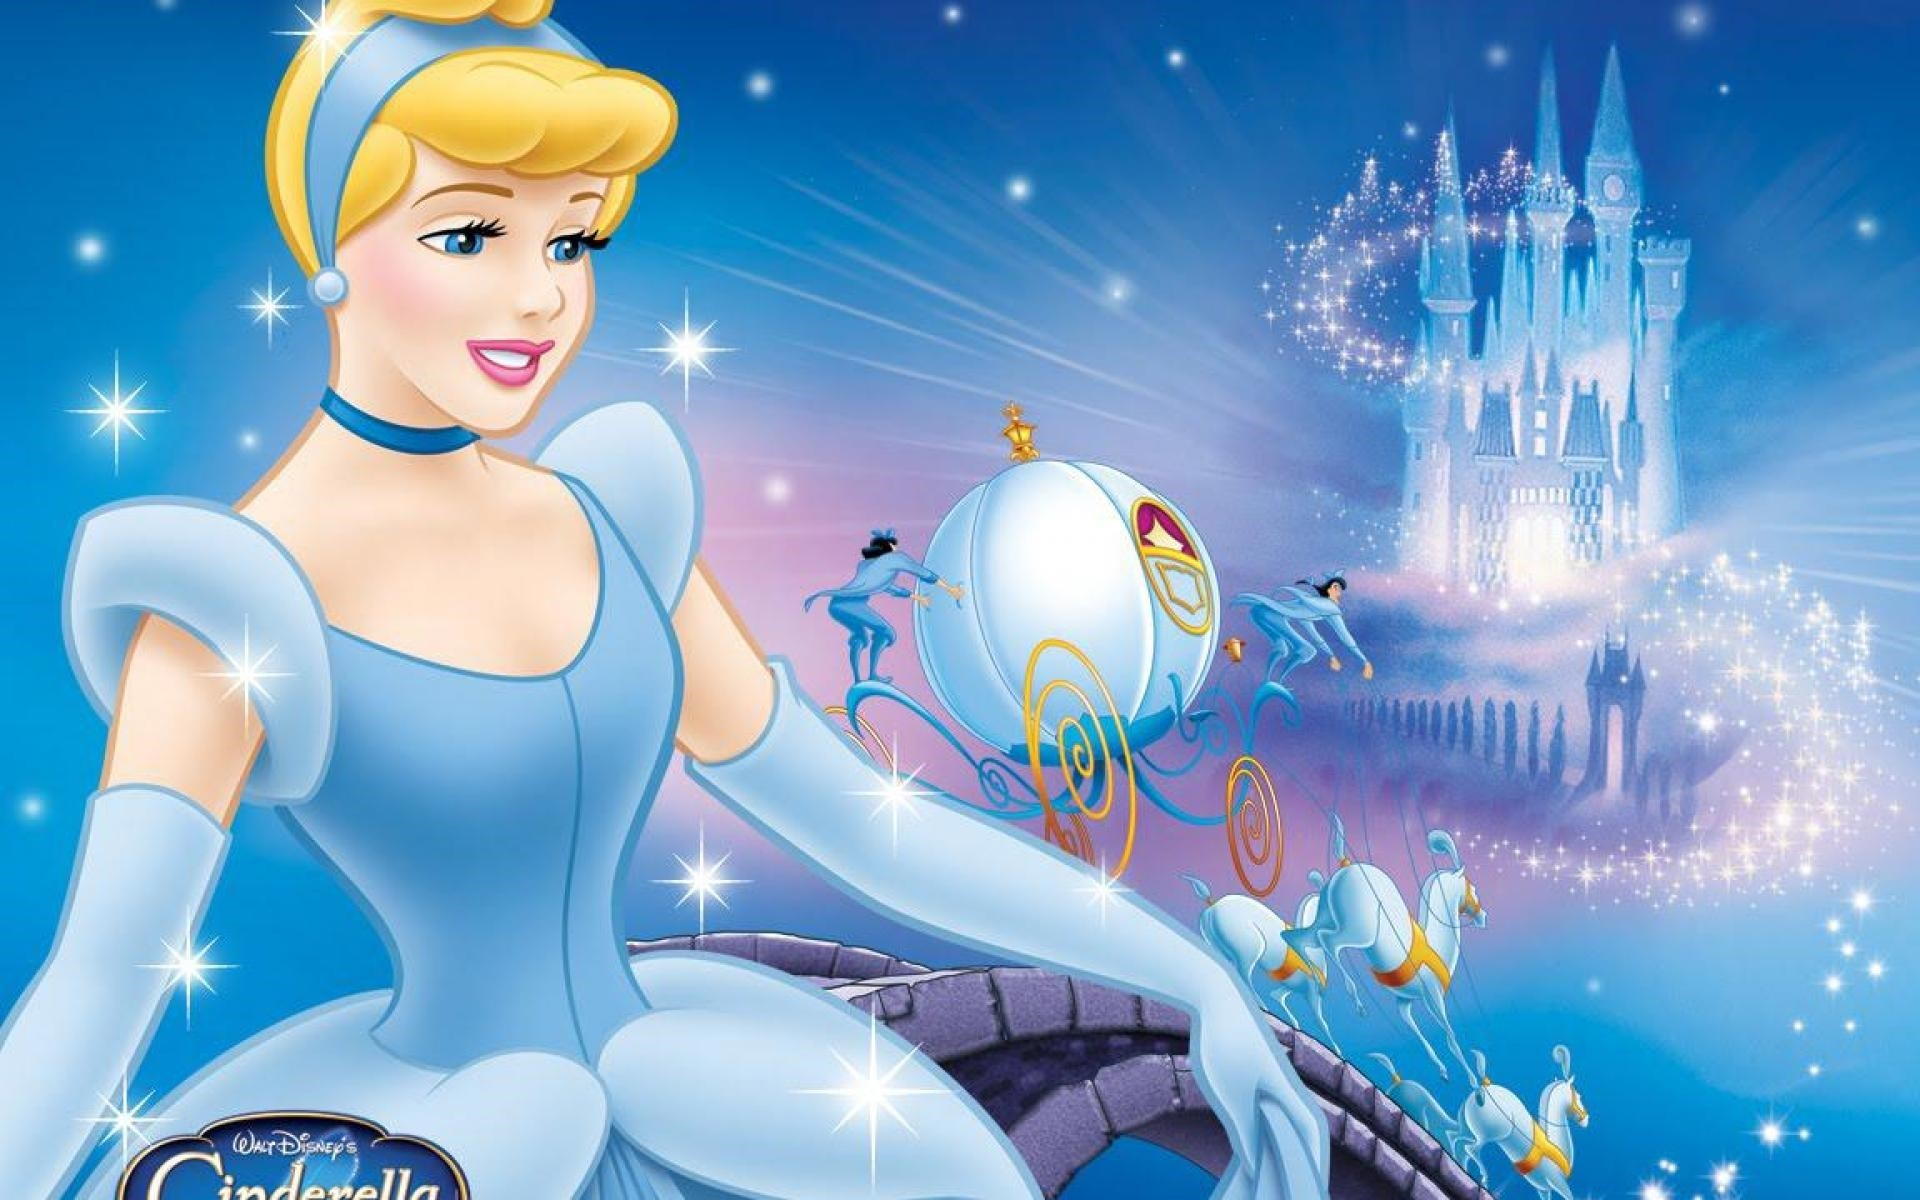 Disney cinderella wallpapers 70 background pictures 1920x1200 cinderella wallpaper for phone cartoons wallpapers 1024768 pics of cinderella wallpapers 50 wallpapers thecheapjerseys Choice Image